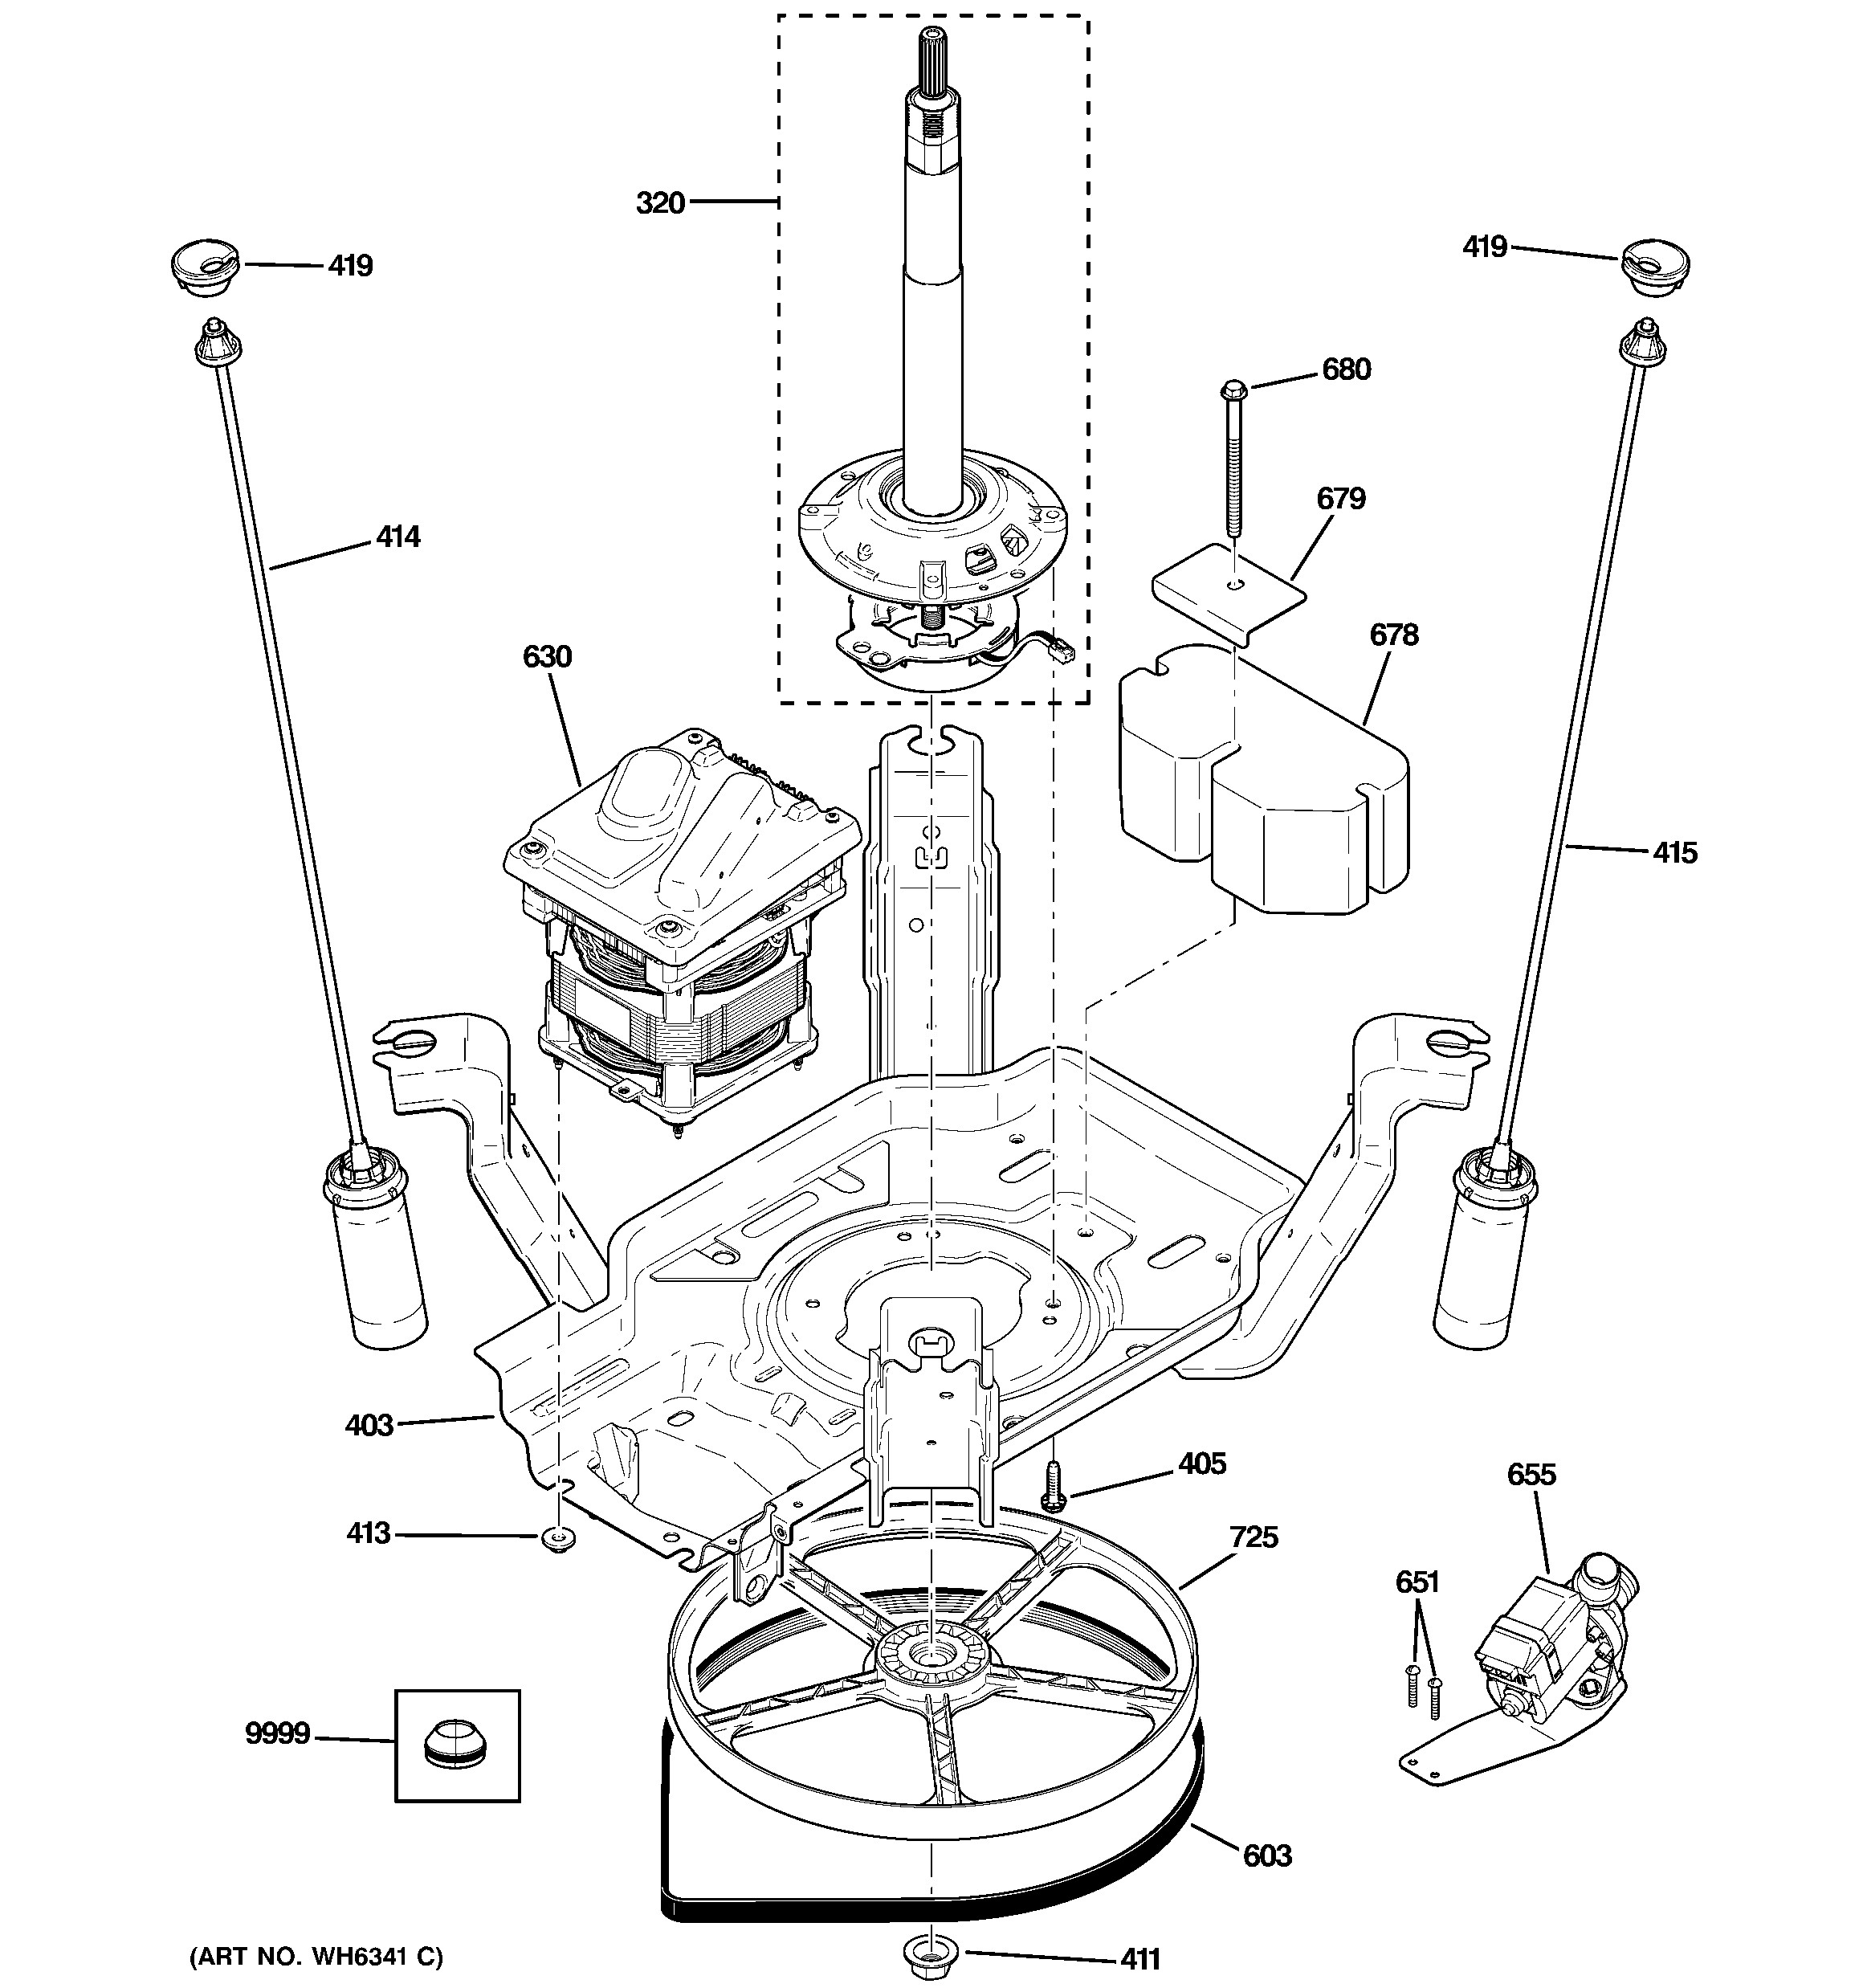 Engine Parts Diagram Names Ge Washer Parts Model Wjre5500g0ww – My ...